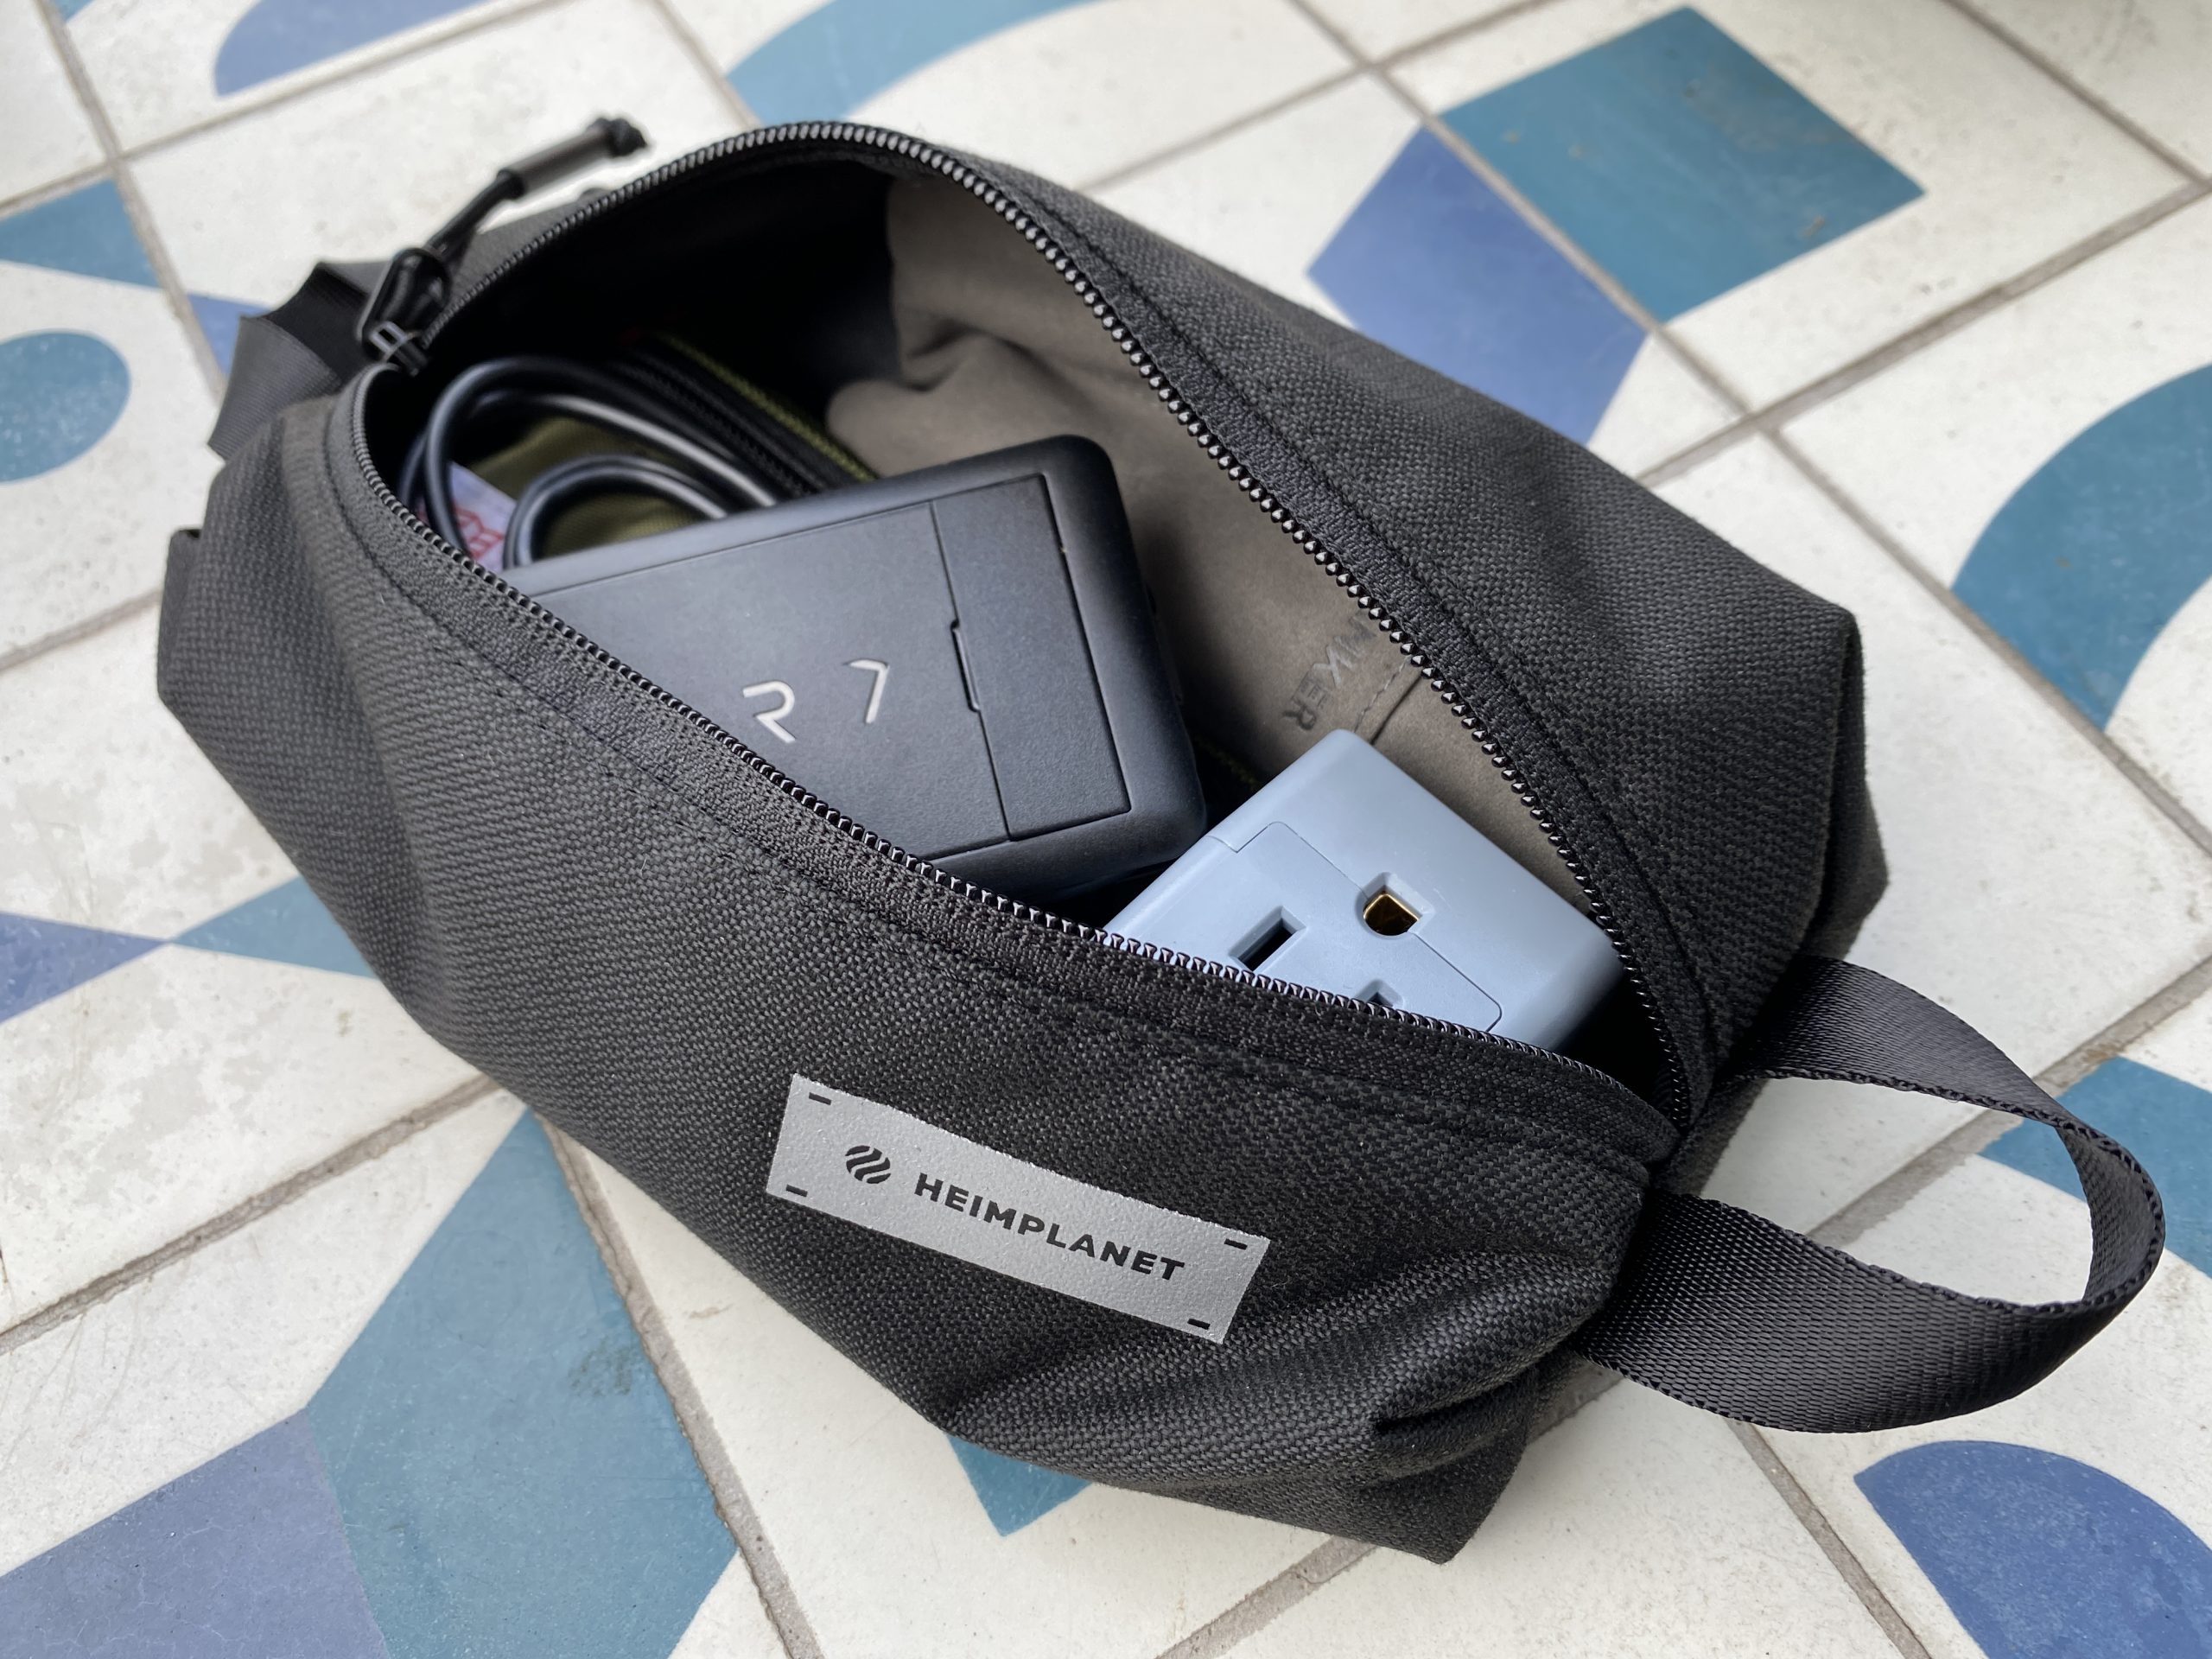 Heimplanet Simple Pouch all packed up with tech items